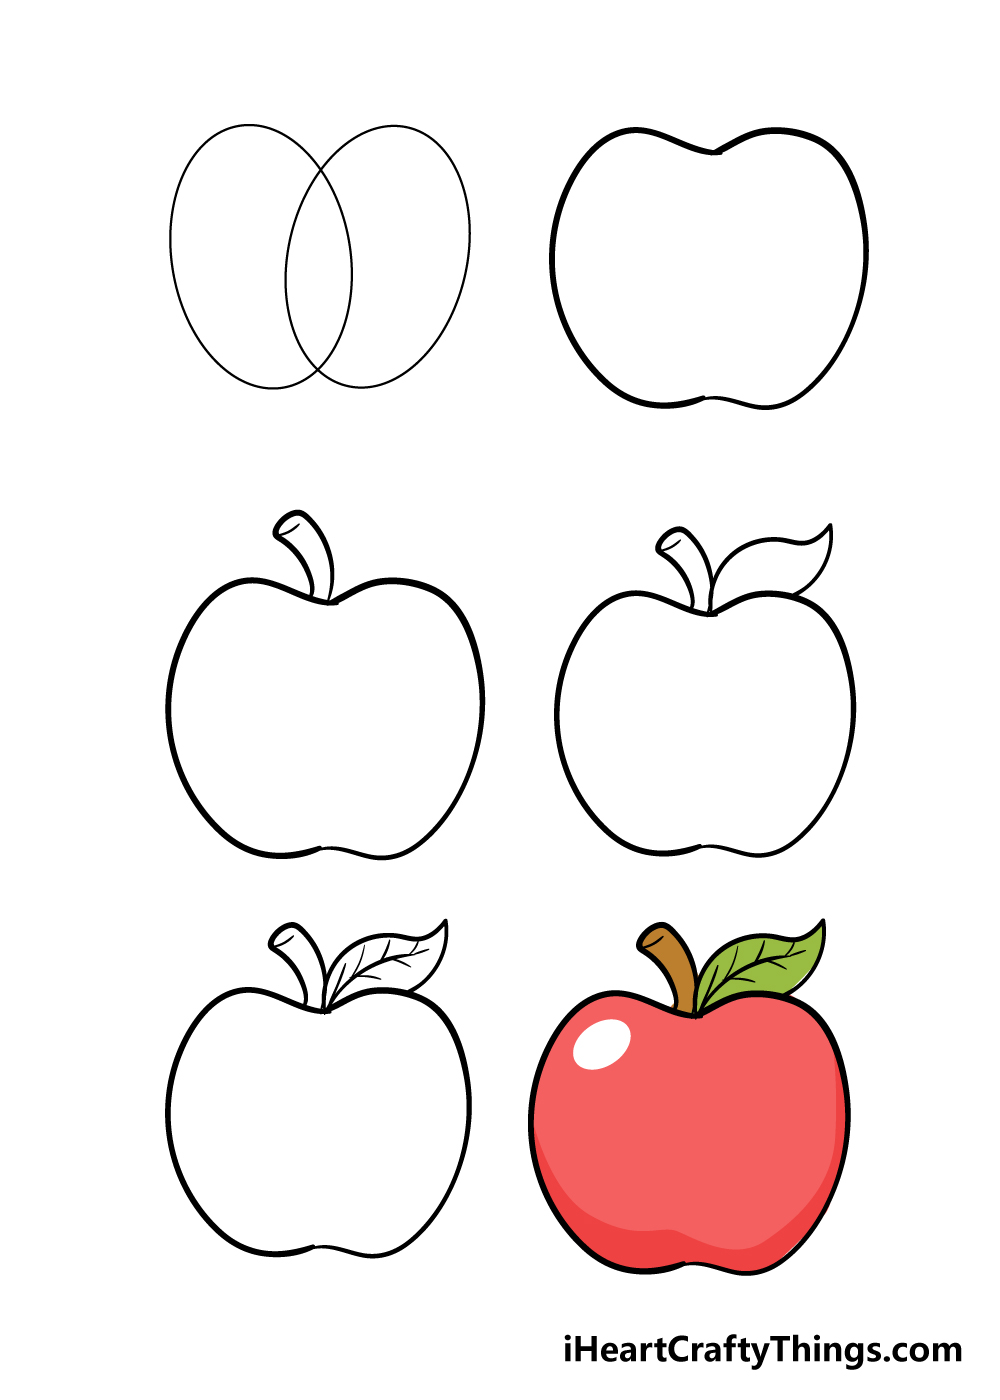 how to draw an apple in 6 steps